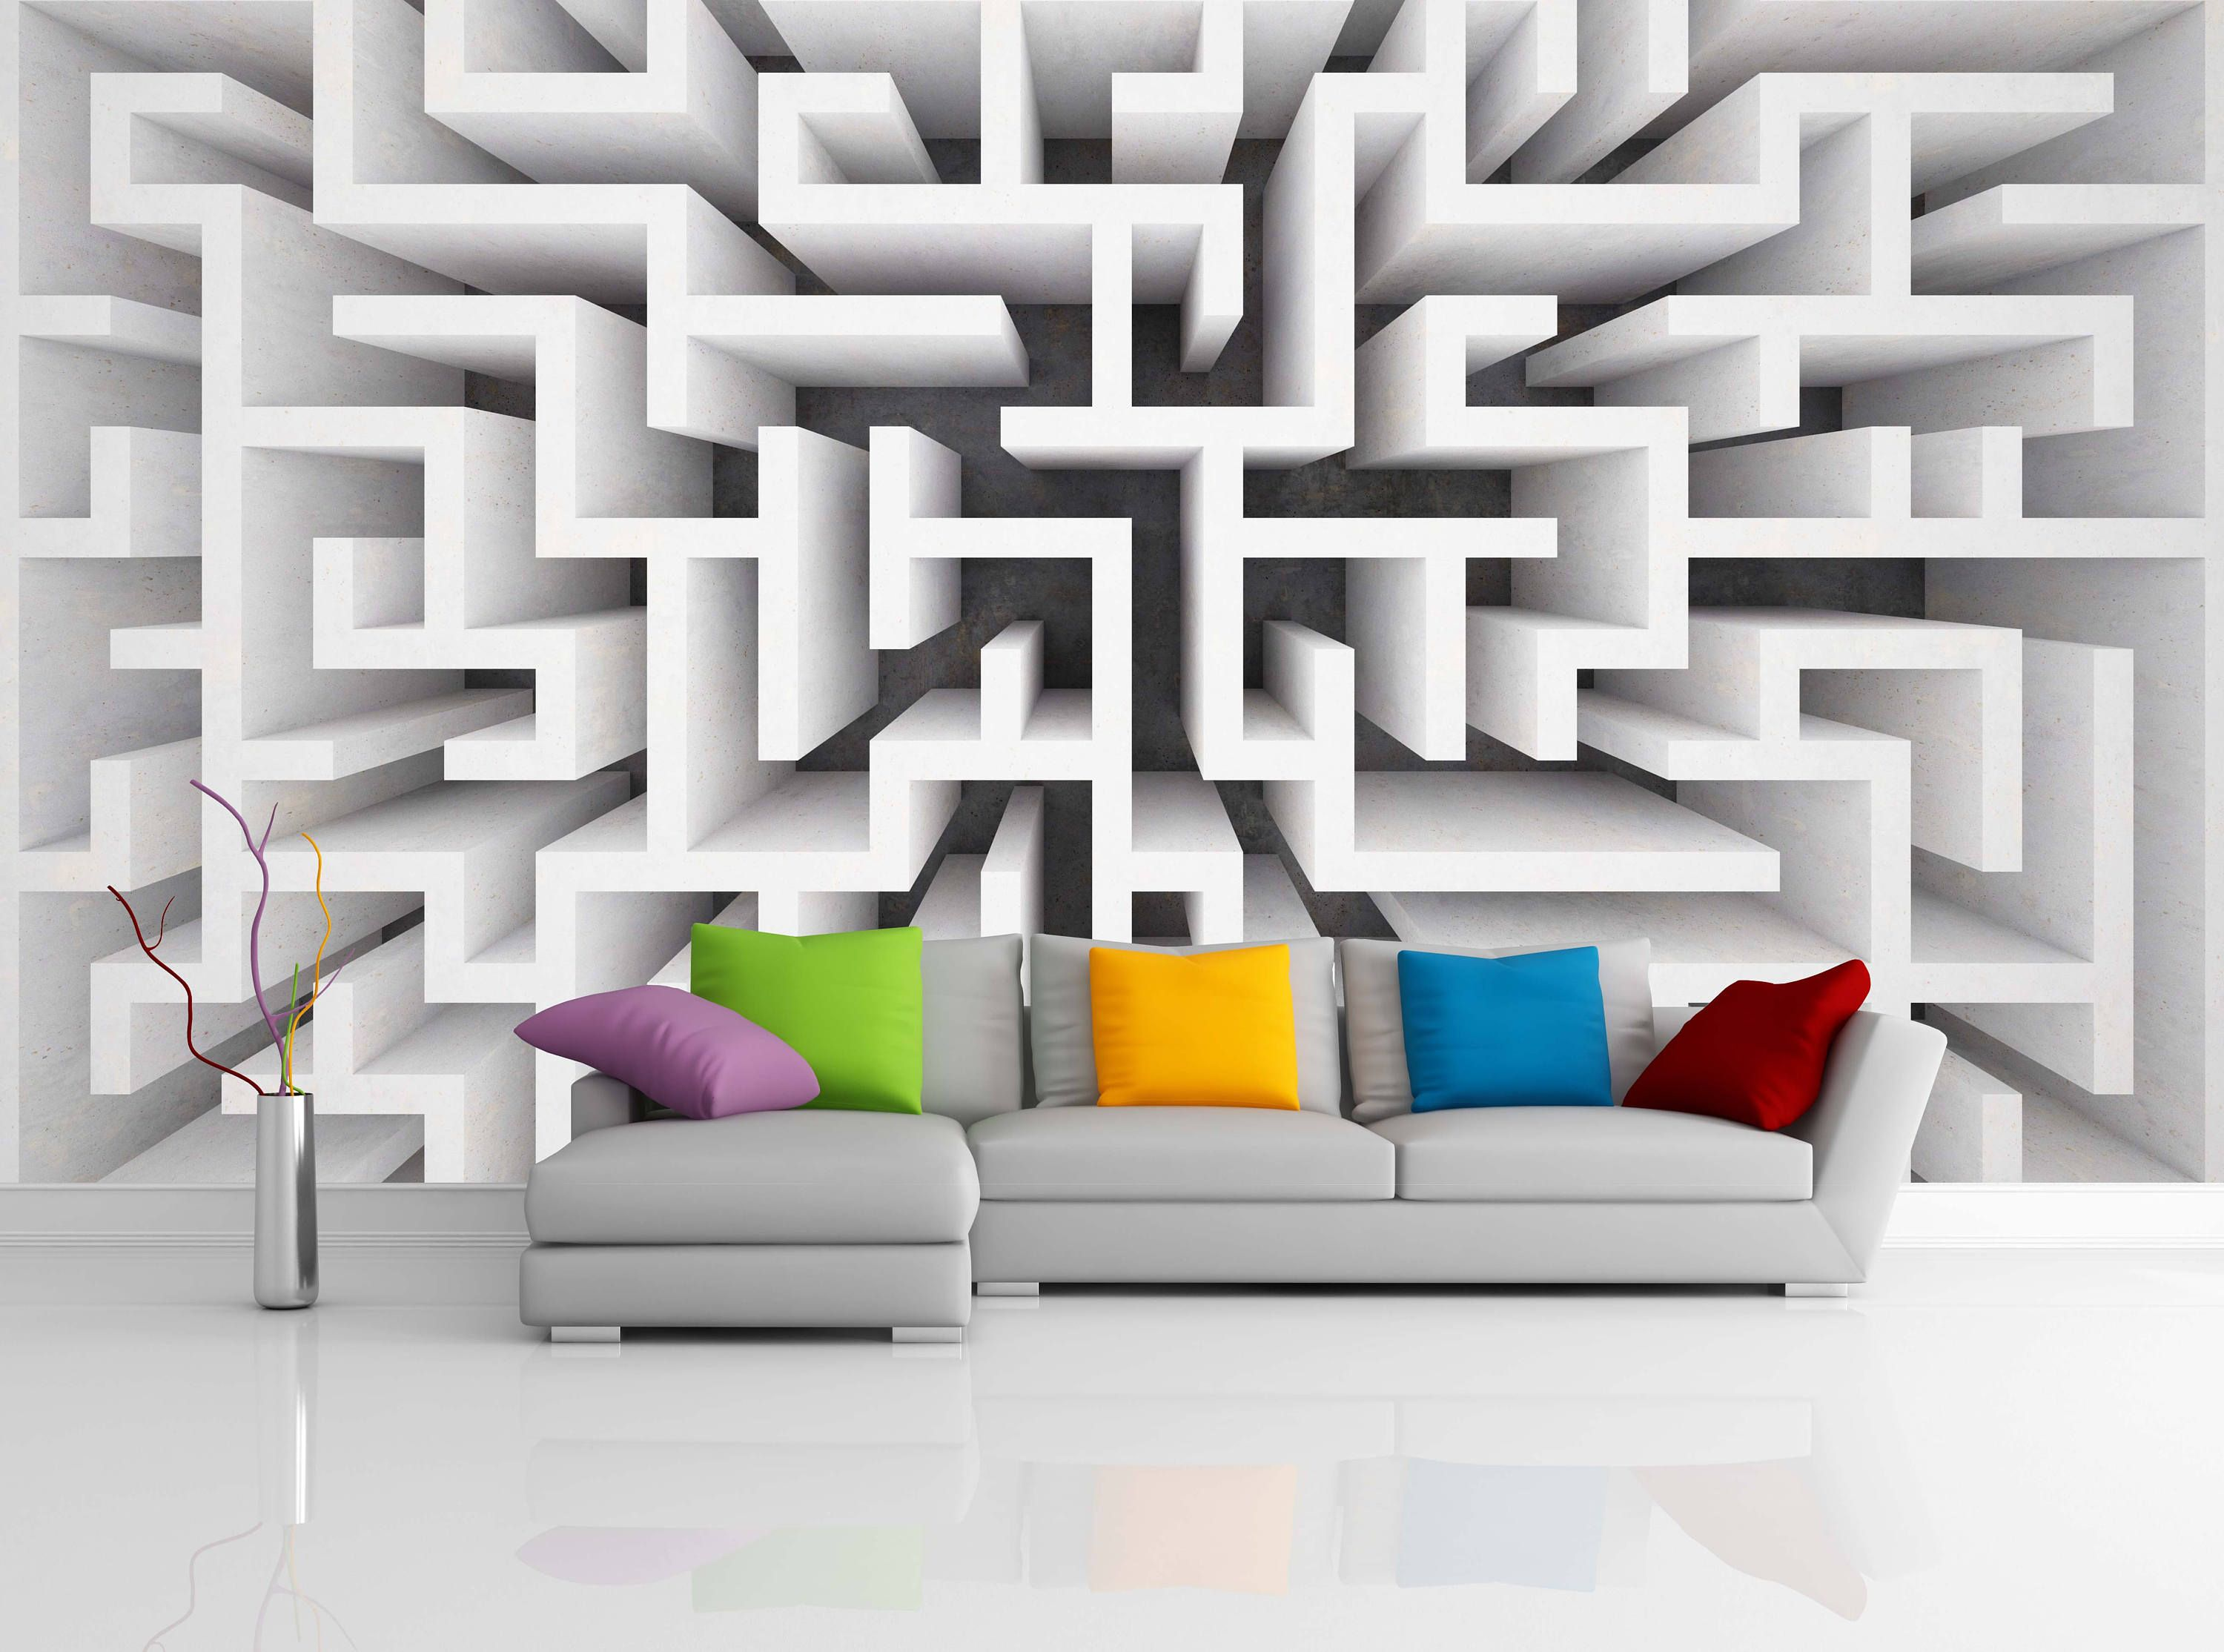 Removable Wallpaper Mural Peel Stick 3d Rendering Maze In Top View By Uniqstiq On Etsy Removable Wallpaper Mural Wallpaper Colorful Wallpaper